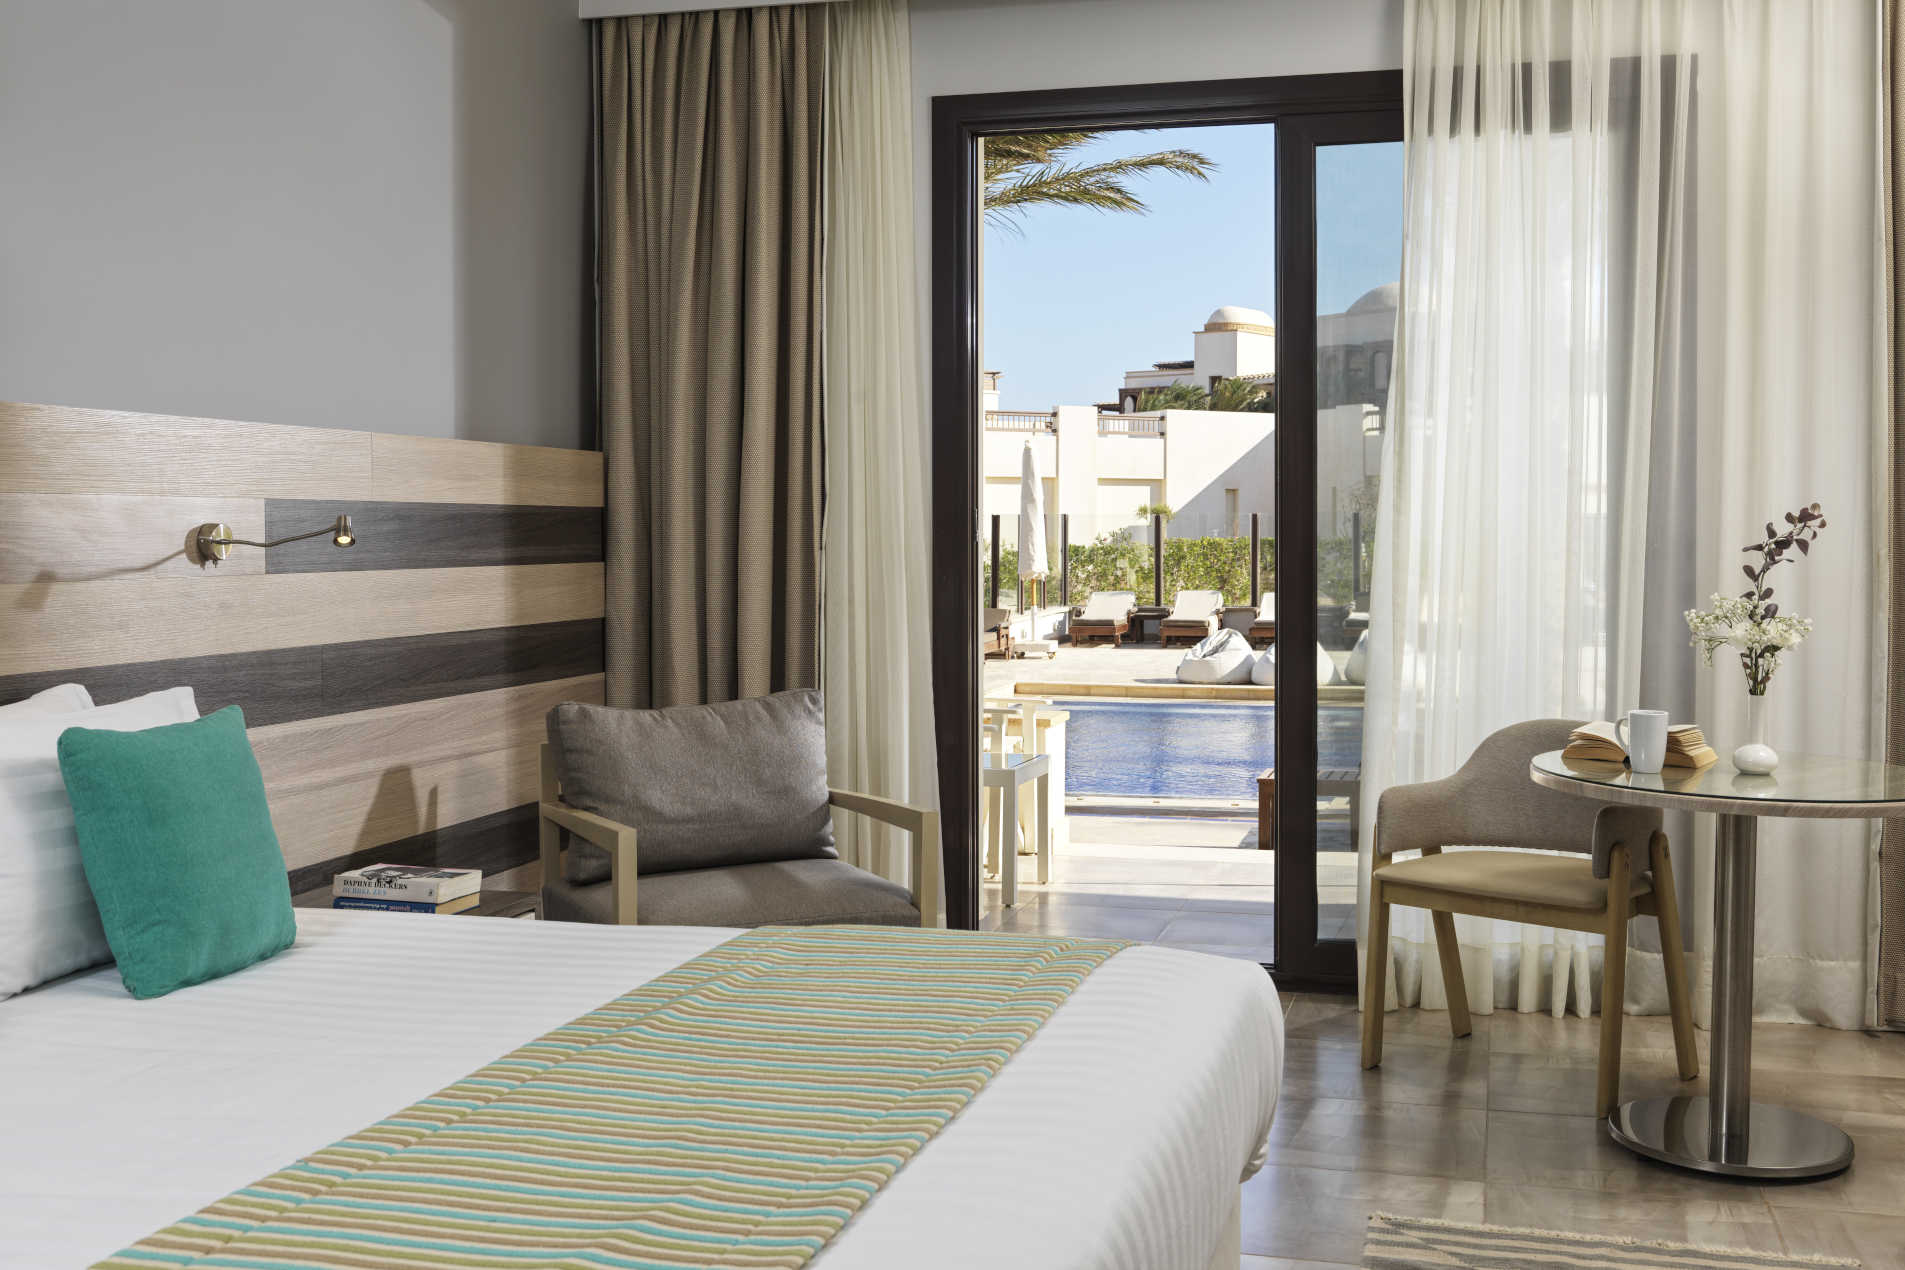 The king bedroom at Ancient Sands Resort in El Gouna with a glass door to the pool and an outdoor sitting area